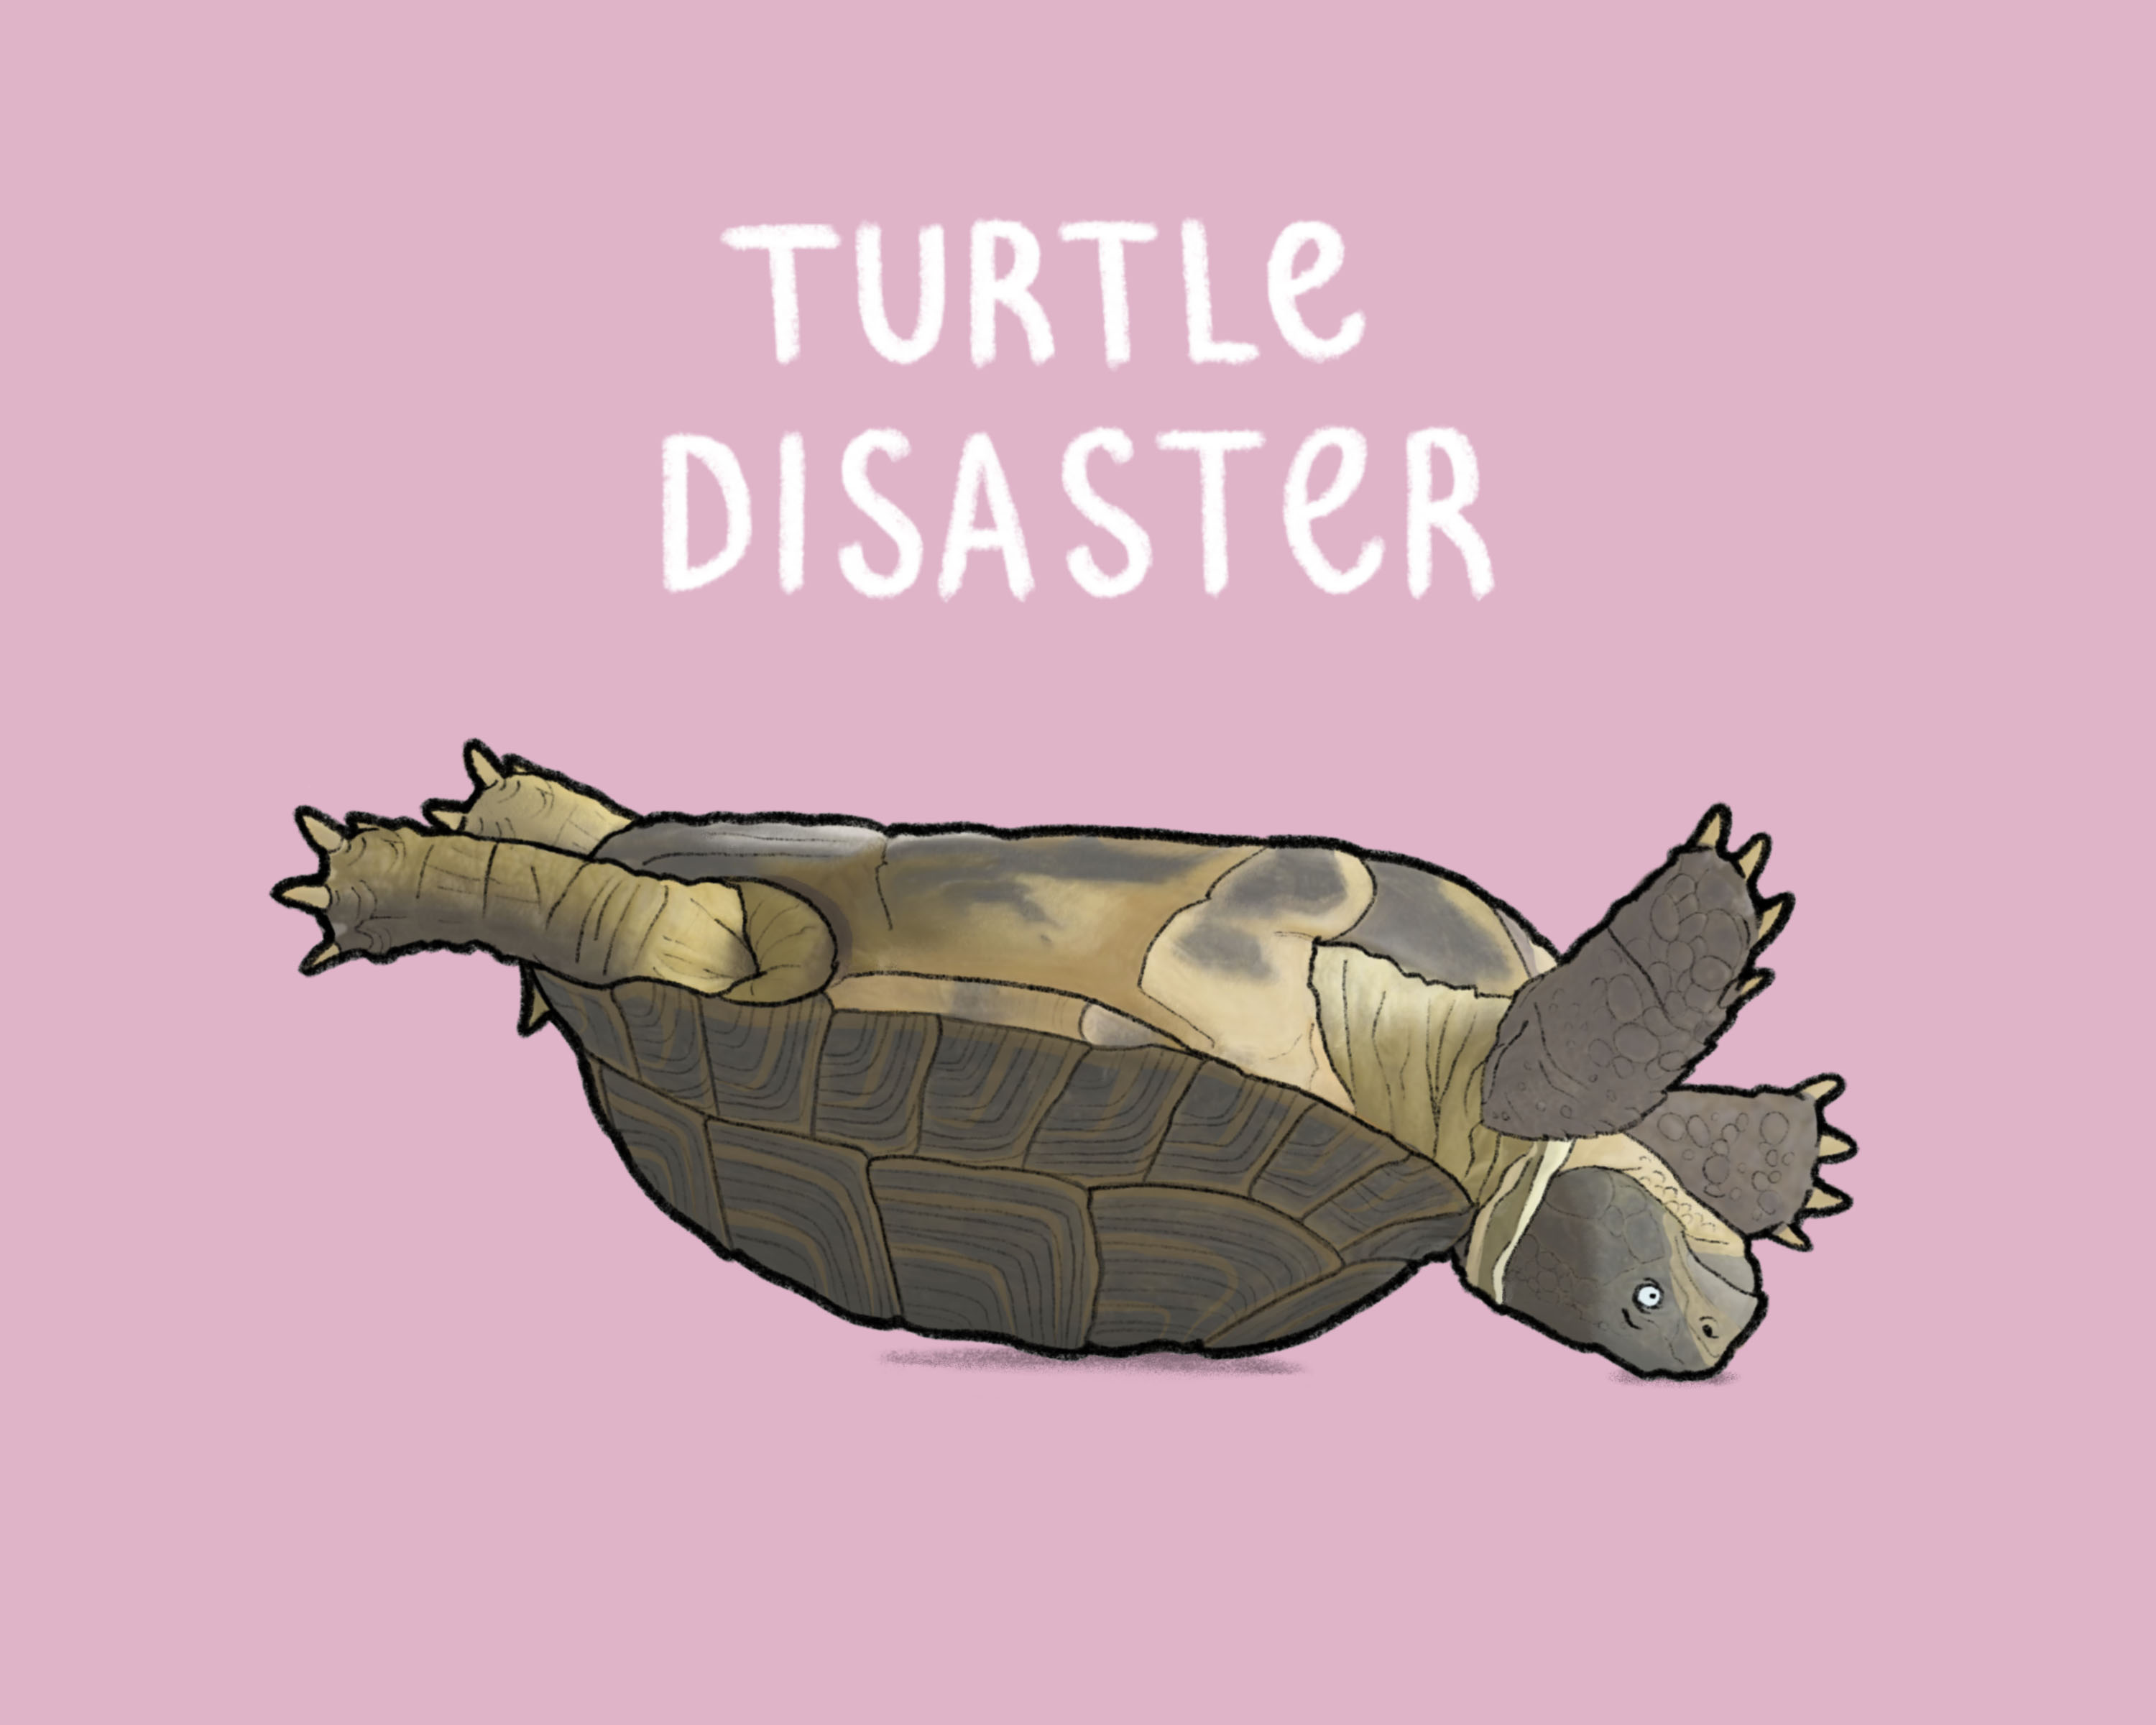 Turtle Disaster